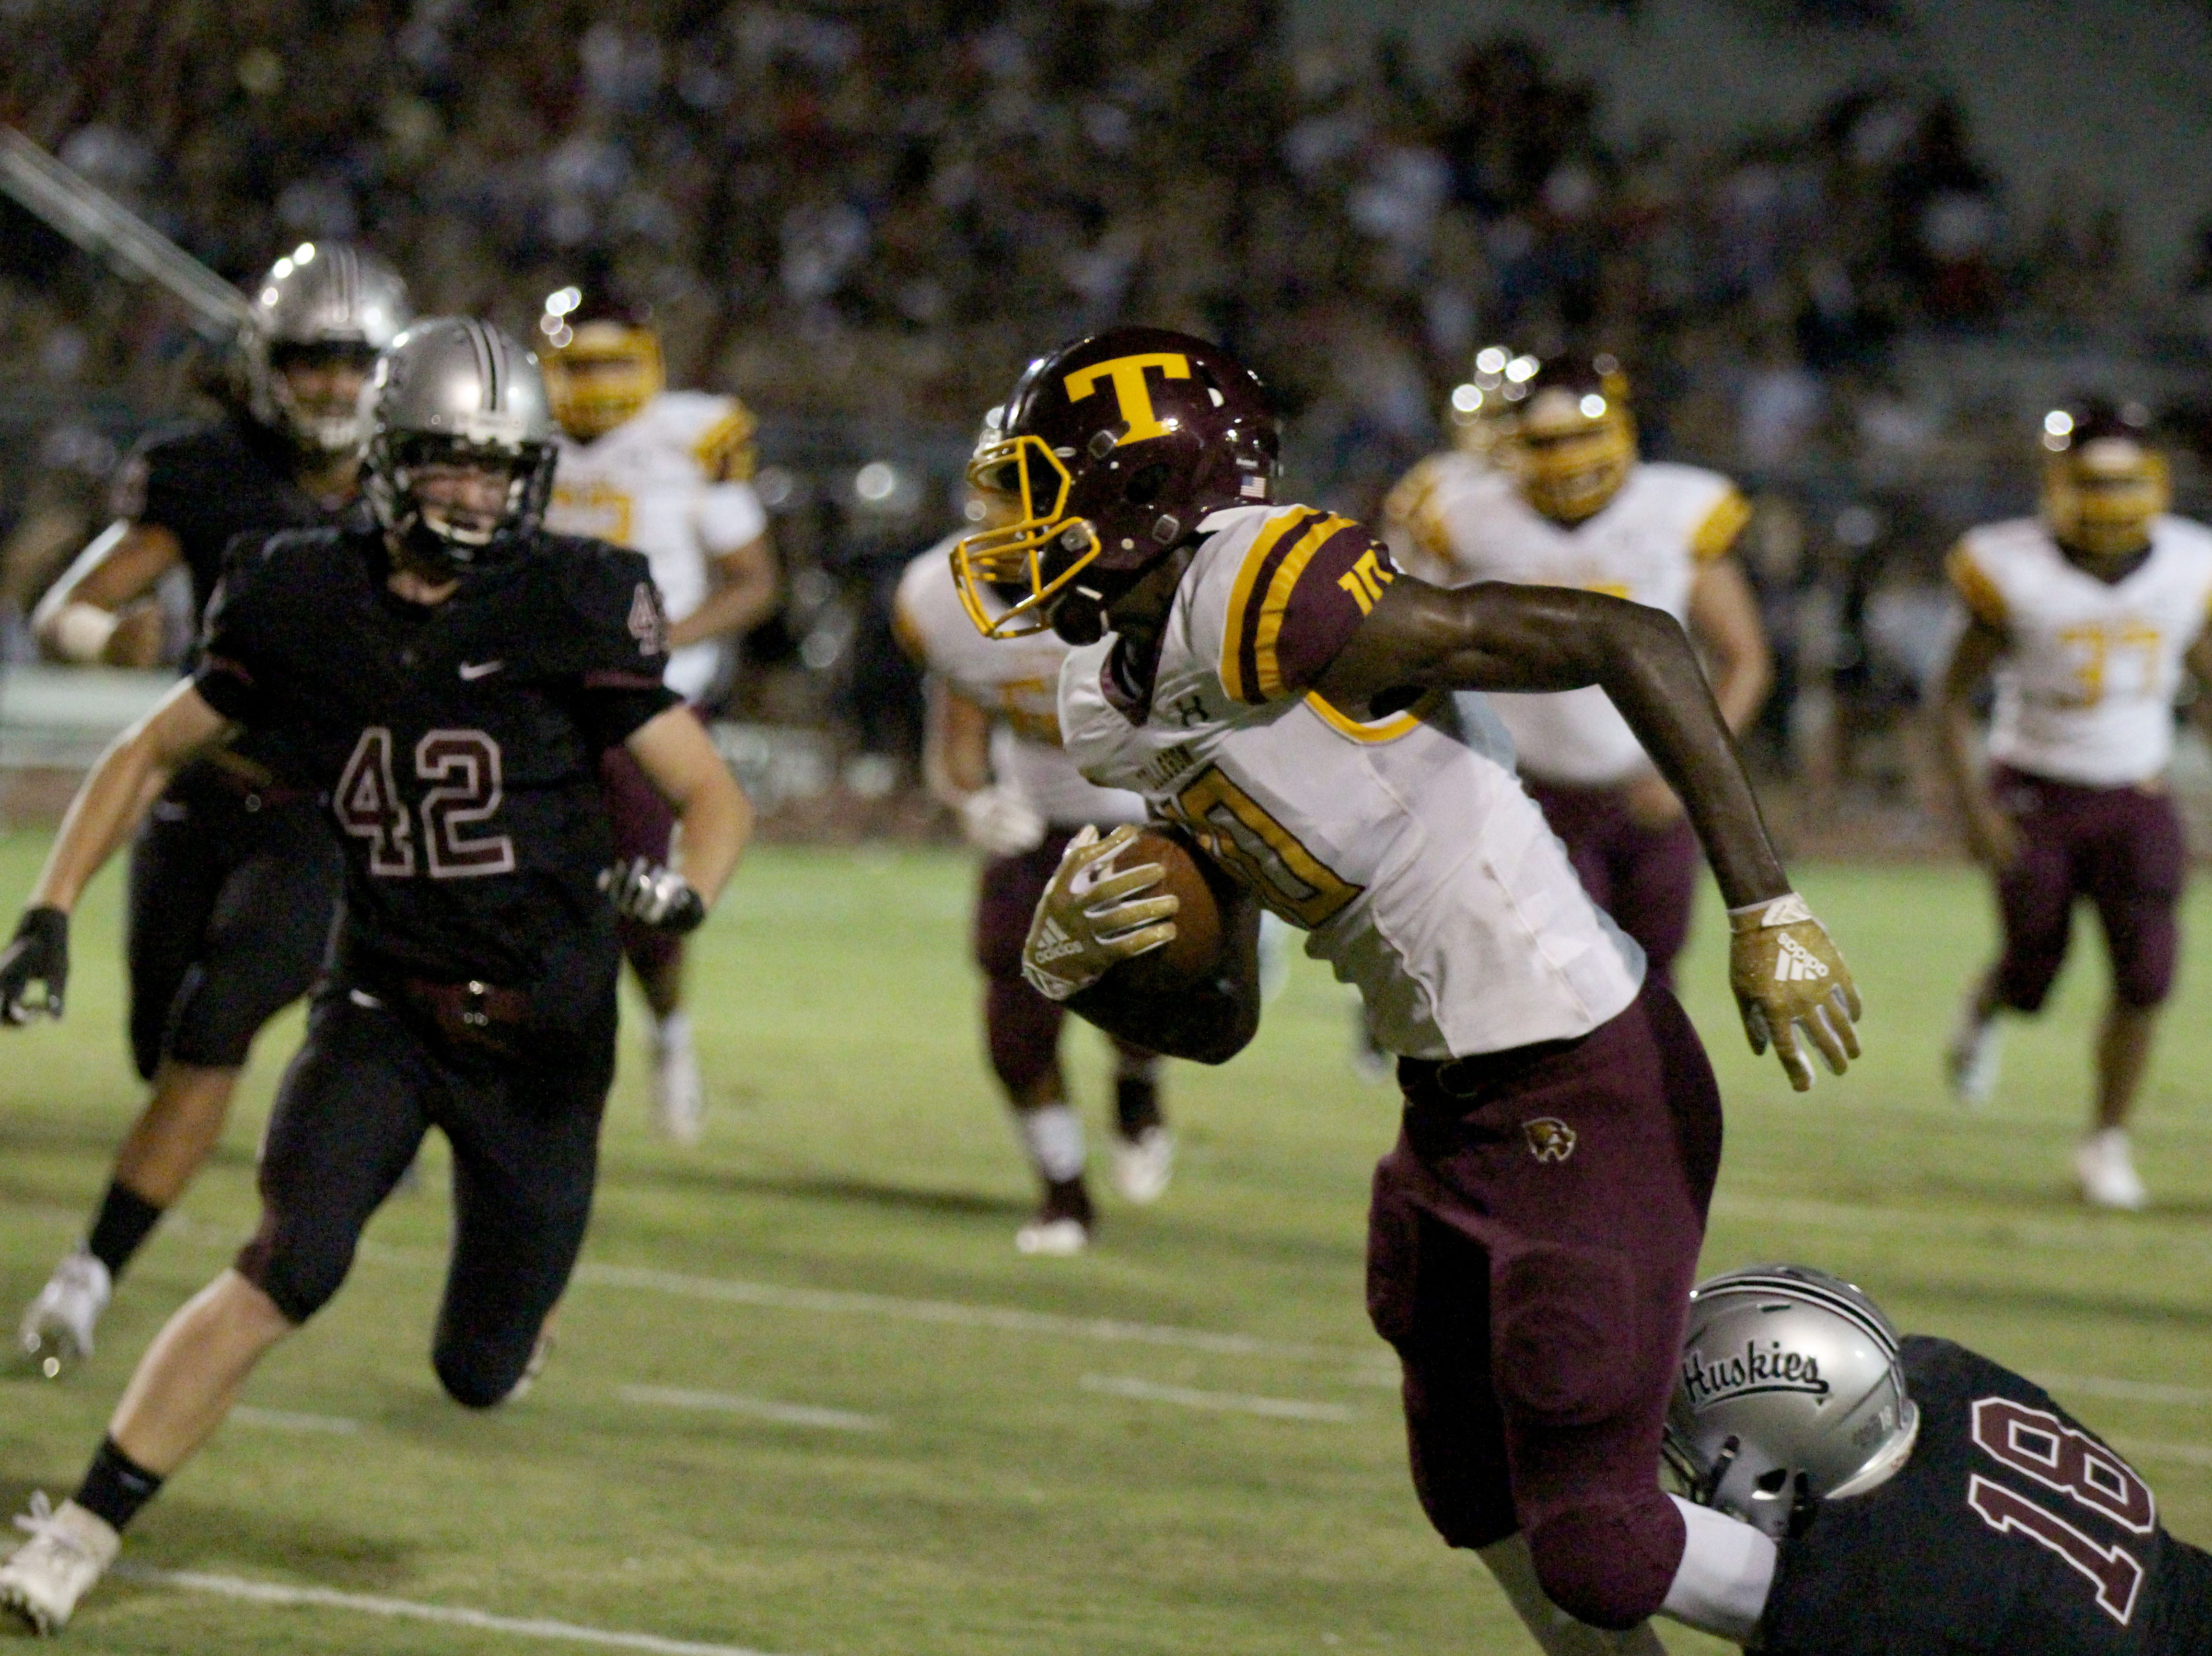 Tolleson's Andre Johnson (10) gets tackled by Hamilton's Jamar Brown (18) on Friday night in Chandler, Ariz. Sept. 7, 2018.